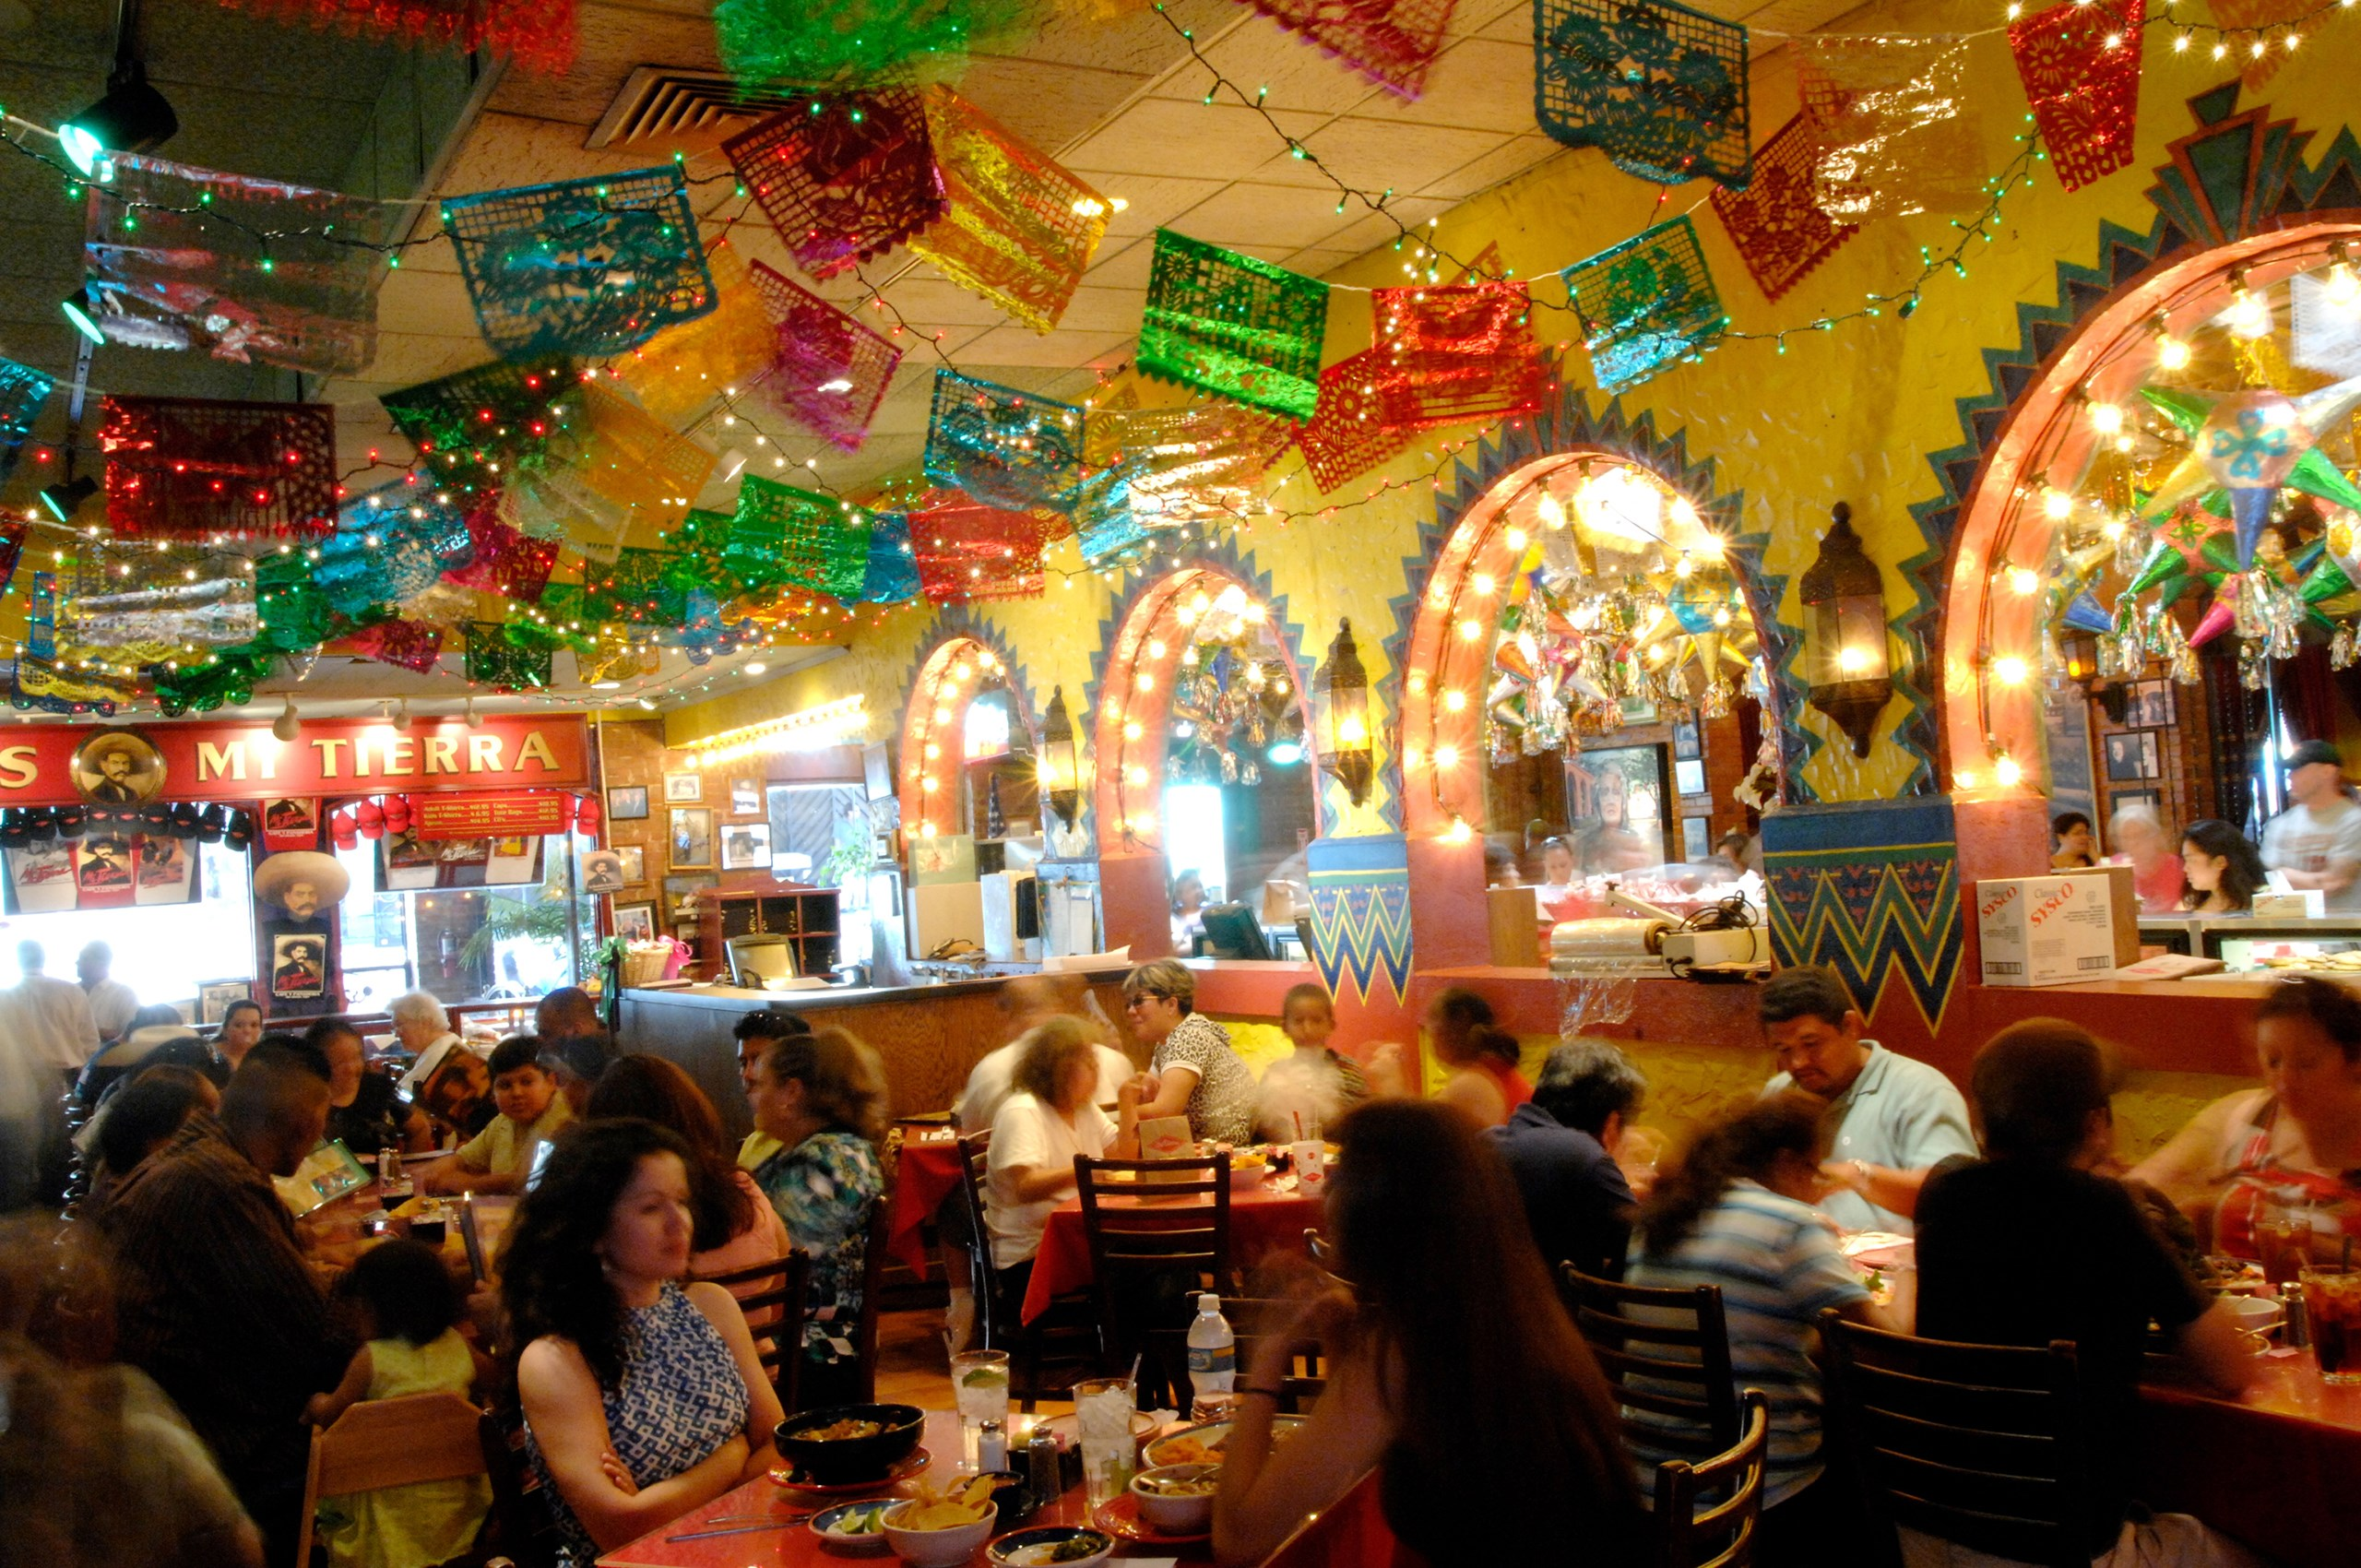 Tex Mex Food Is Cheesy As Are Many Restaurants In San Antonio This Over The Top Touristy Destination Fulfills On Both Levels But It S Got Local